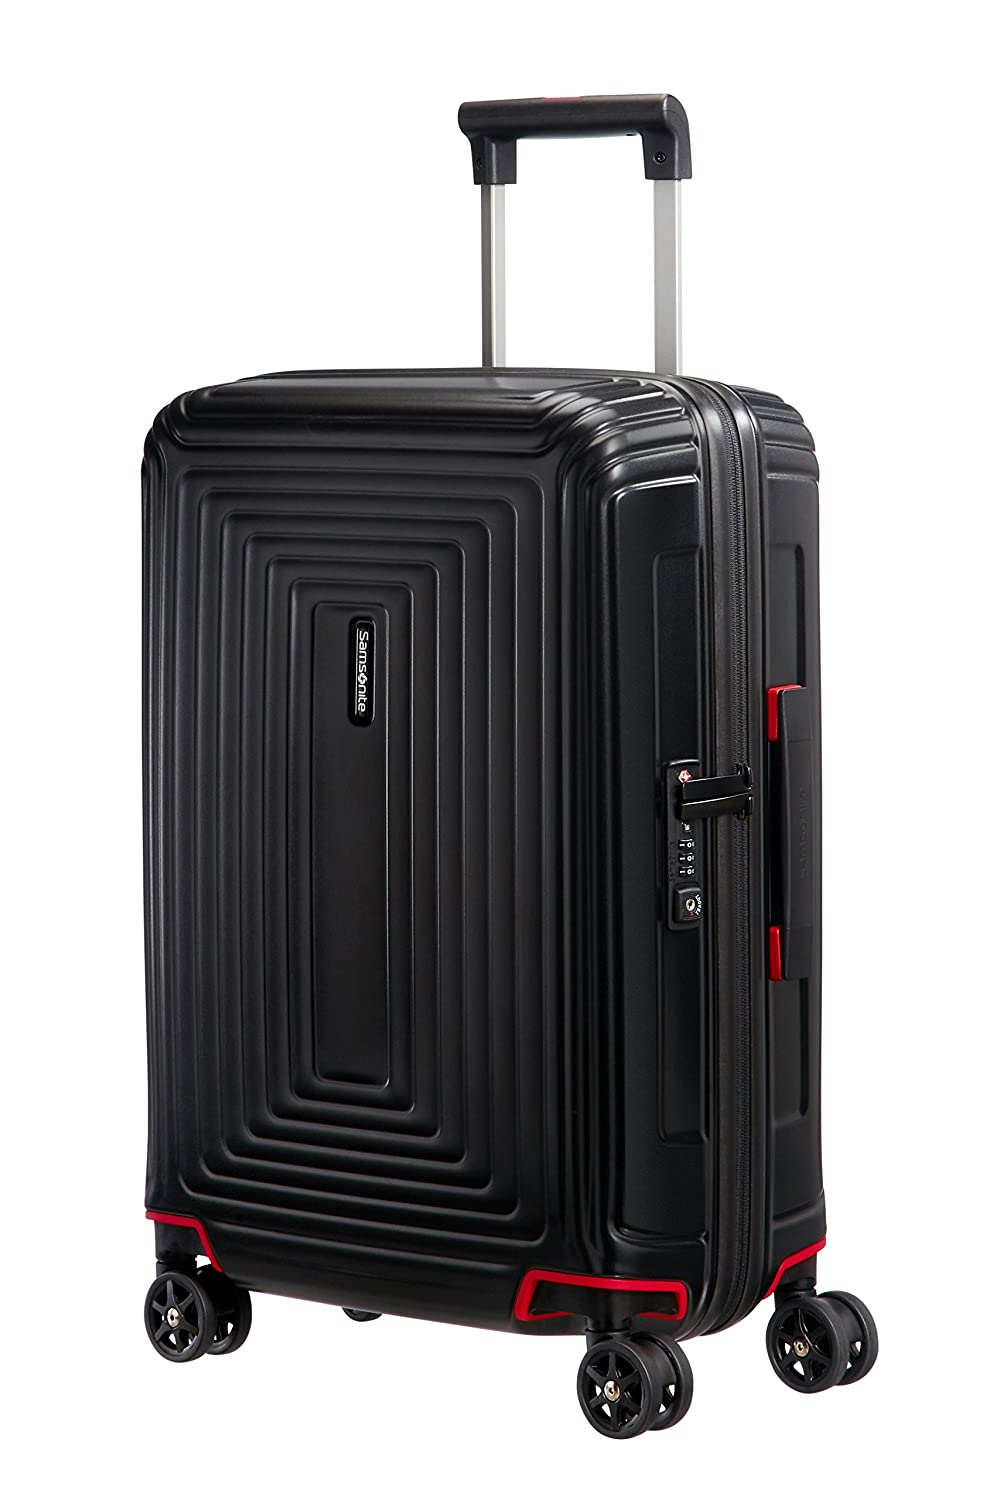 Samsonite Trolley amazon